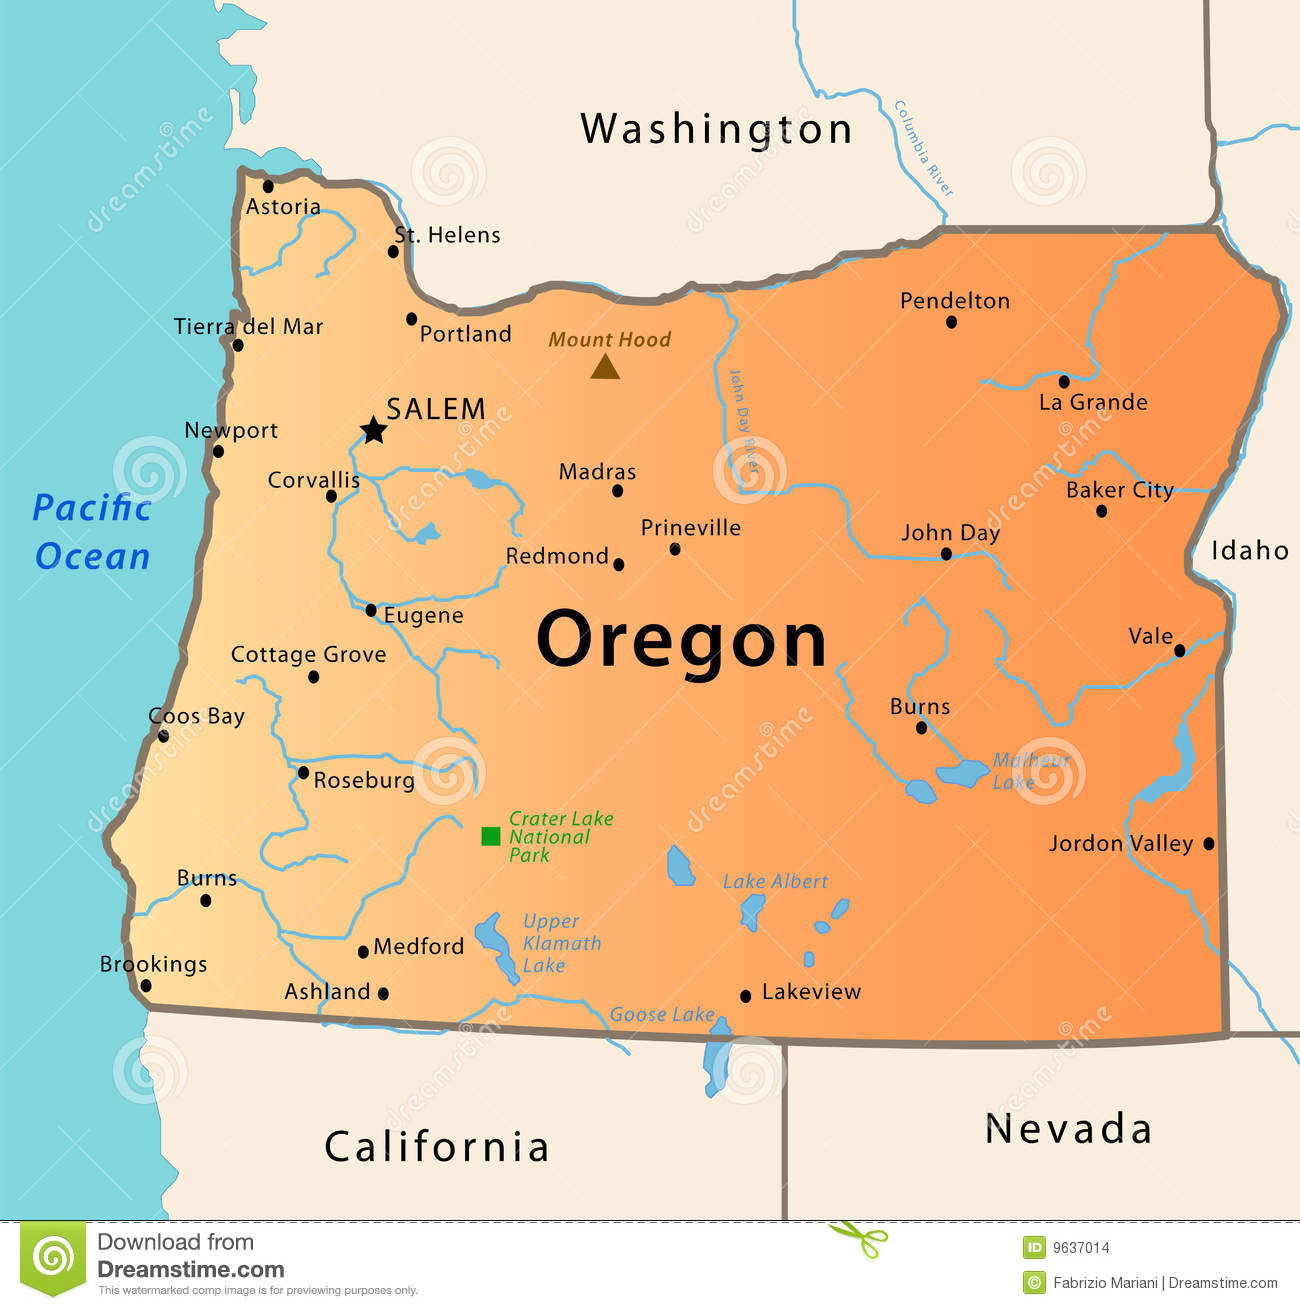 Oregon State Maps | USA | Maps of Oregon (OR)